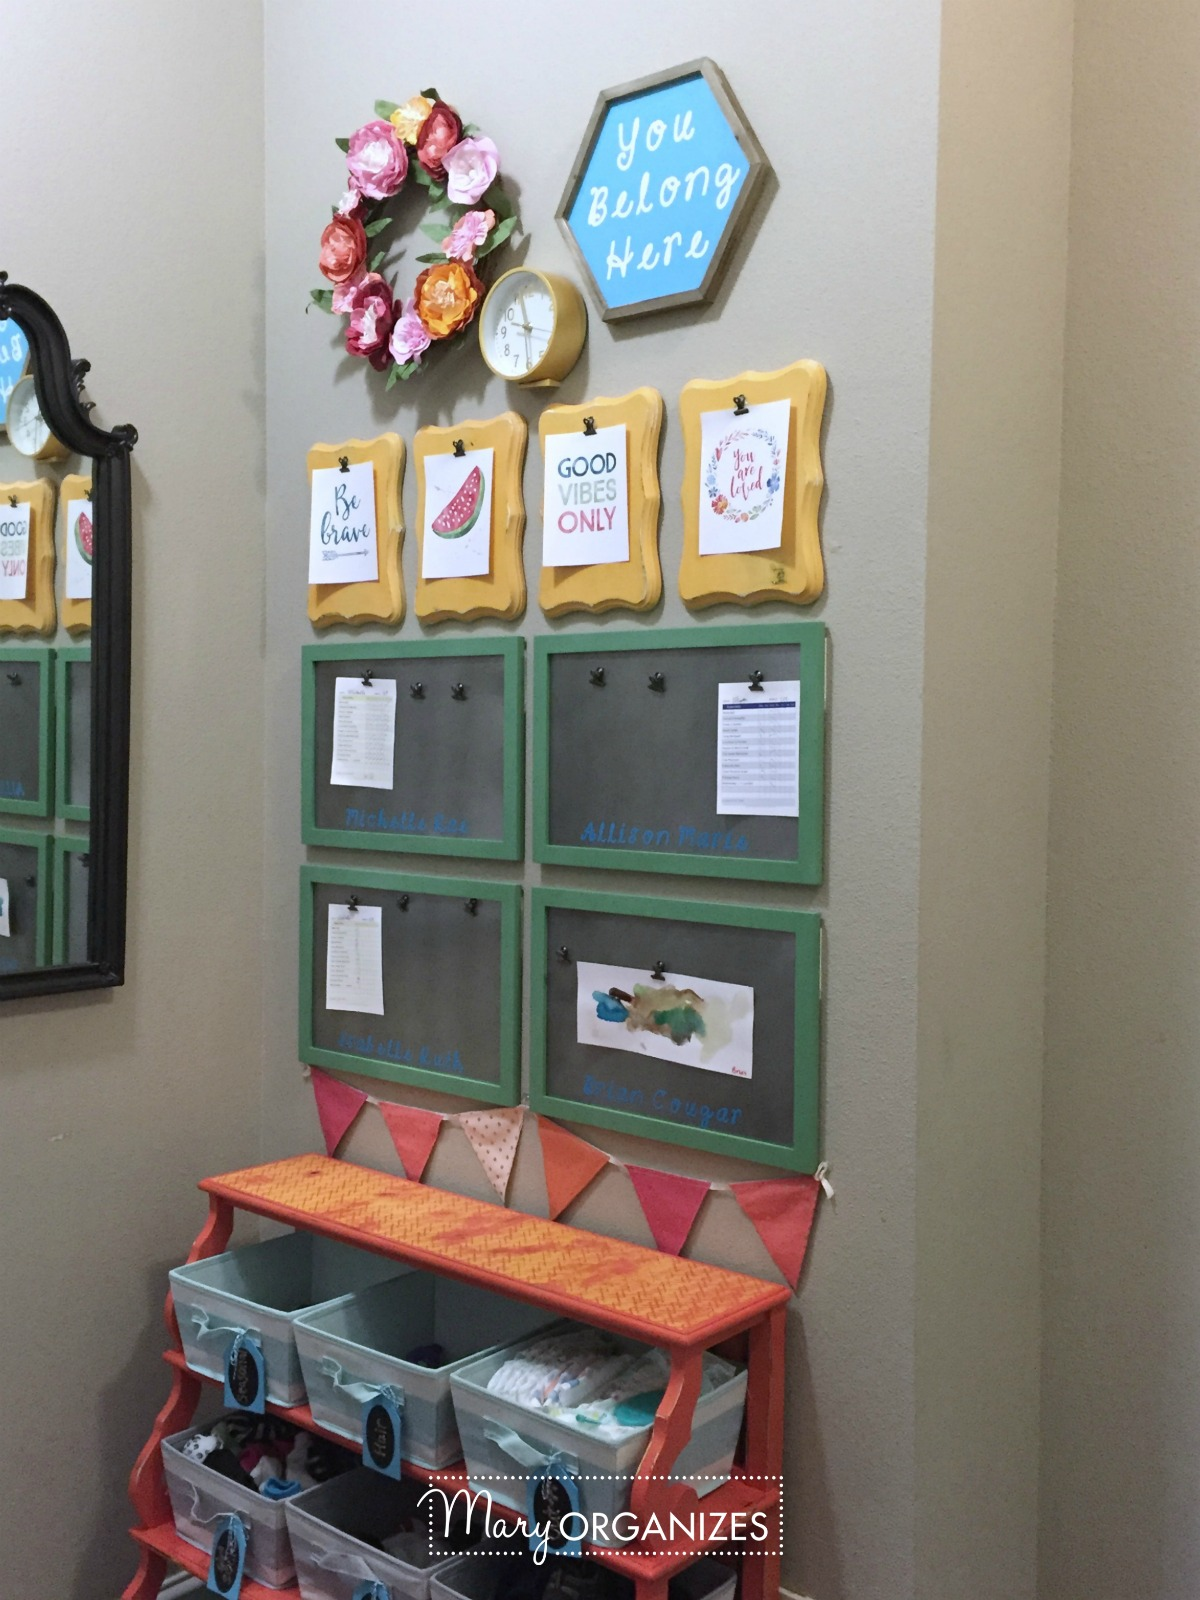 Kids Command Center - for hanging chore lists and more 8